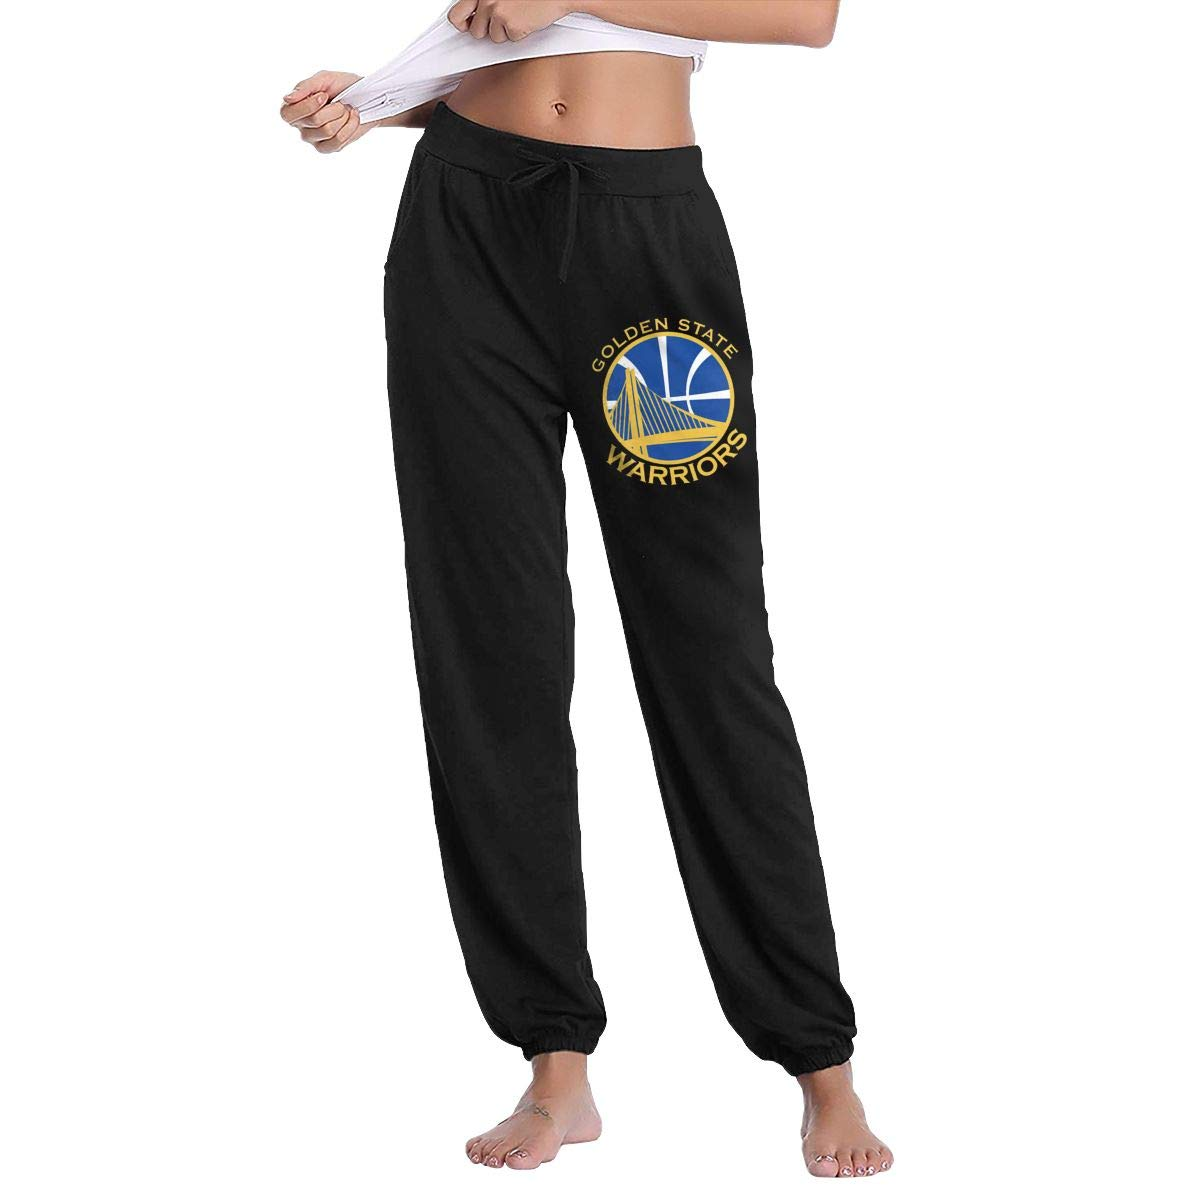 Black L GavDon Women's goldenState SuperStrongWarriors Casual Sweatpants Yoga Jogger Lounge Sweat Pants with Pockets